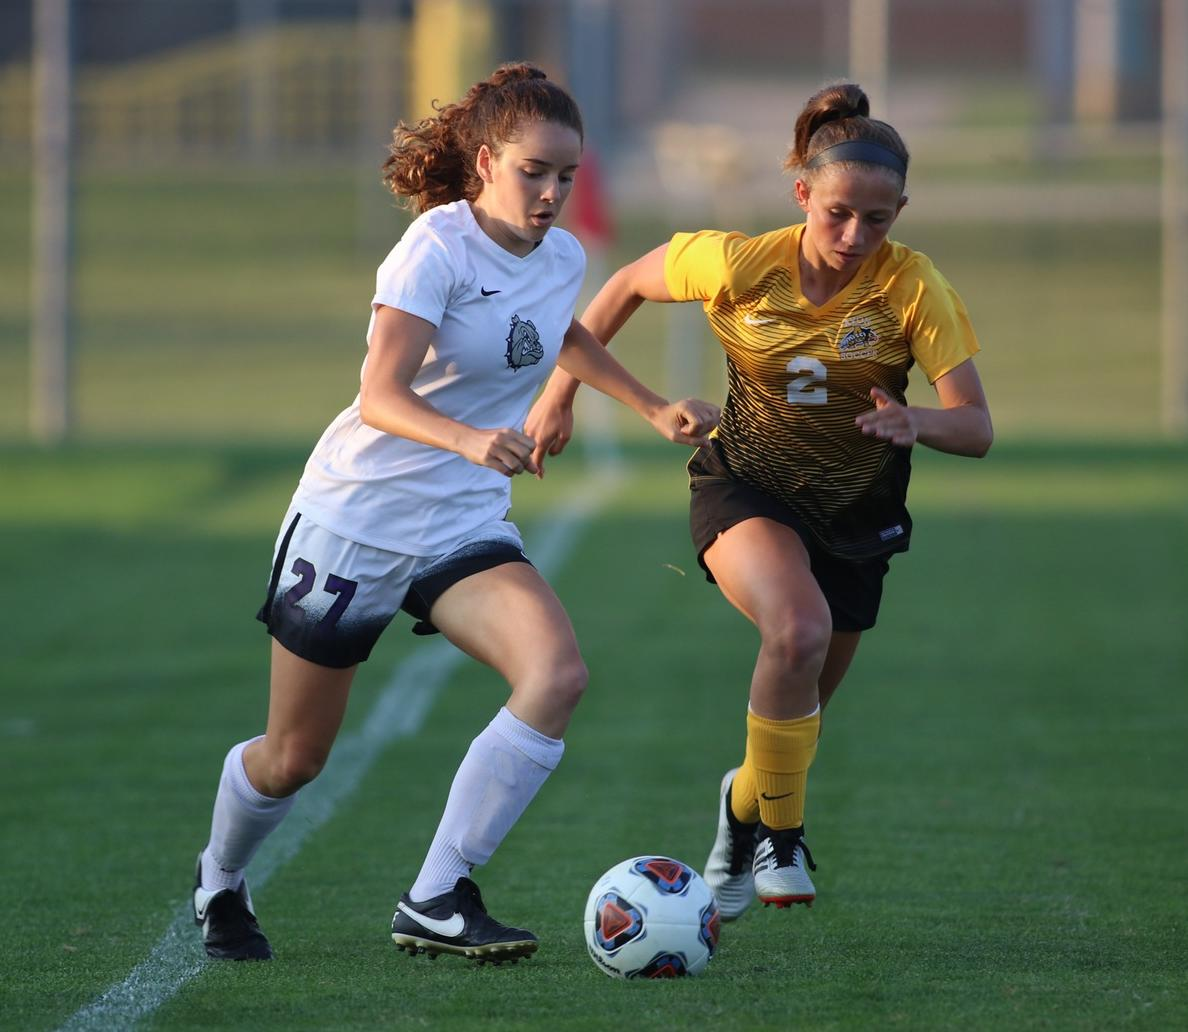 @bhsdogs_gsoccer set for sectional play